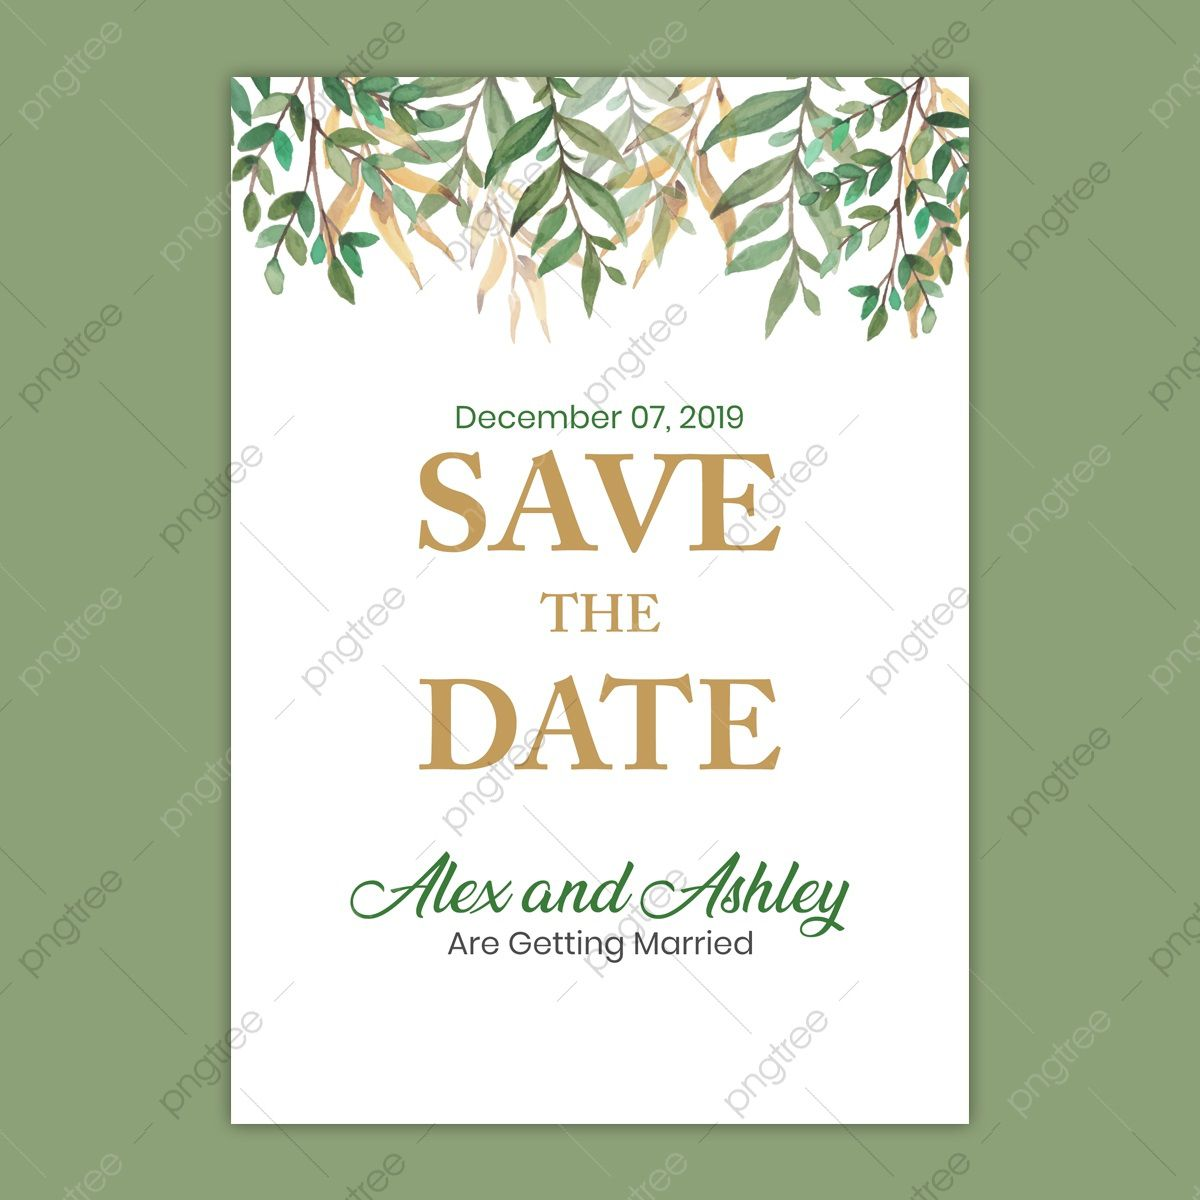 005 Unusual Save The Date Flyer Template Picture  Word EventFull